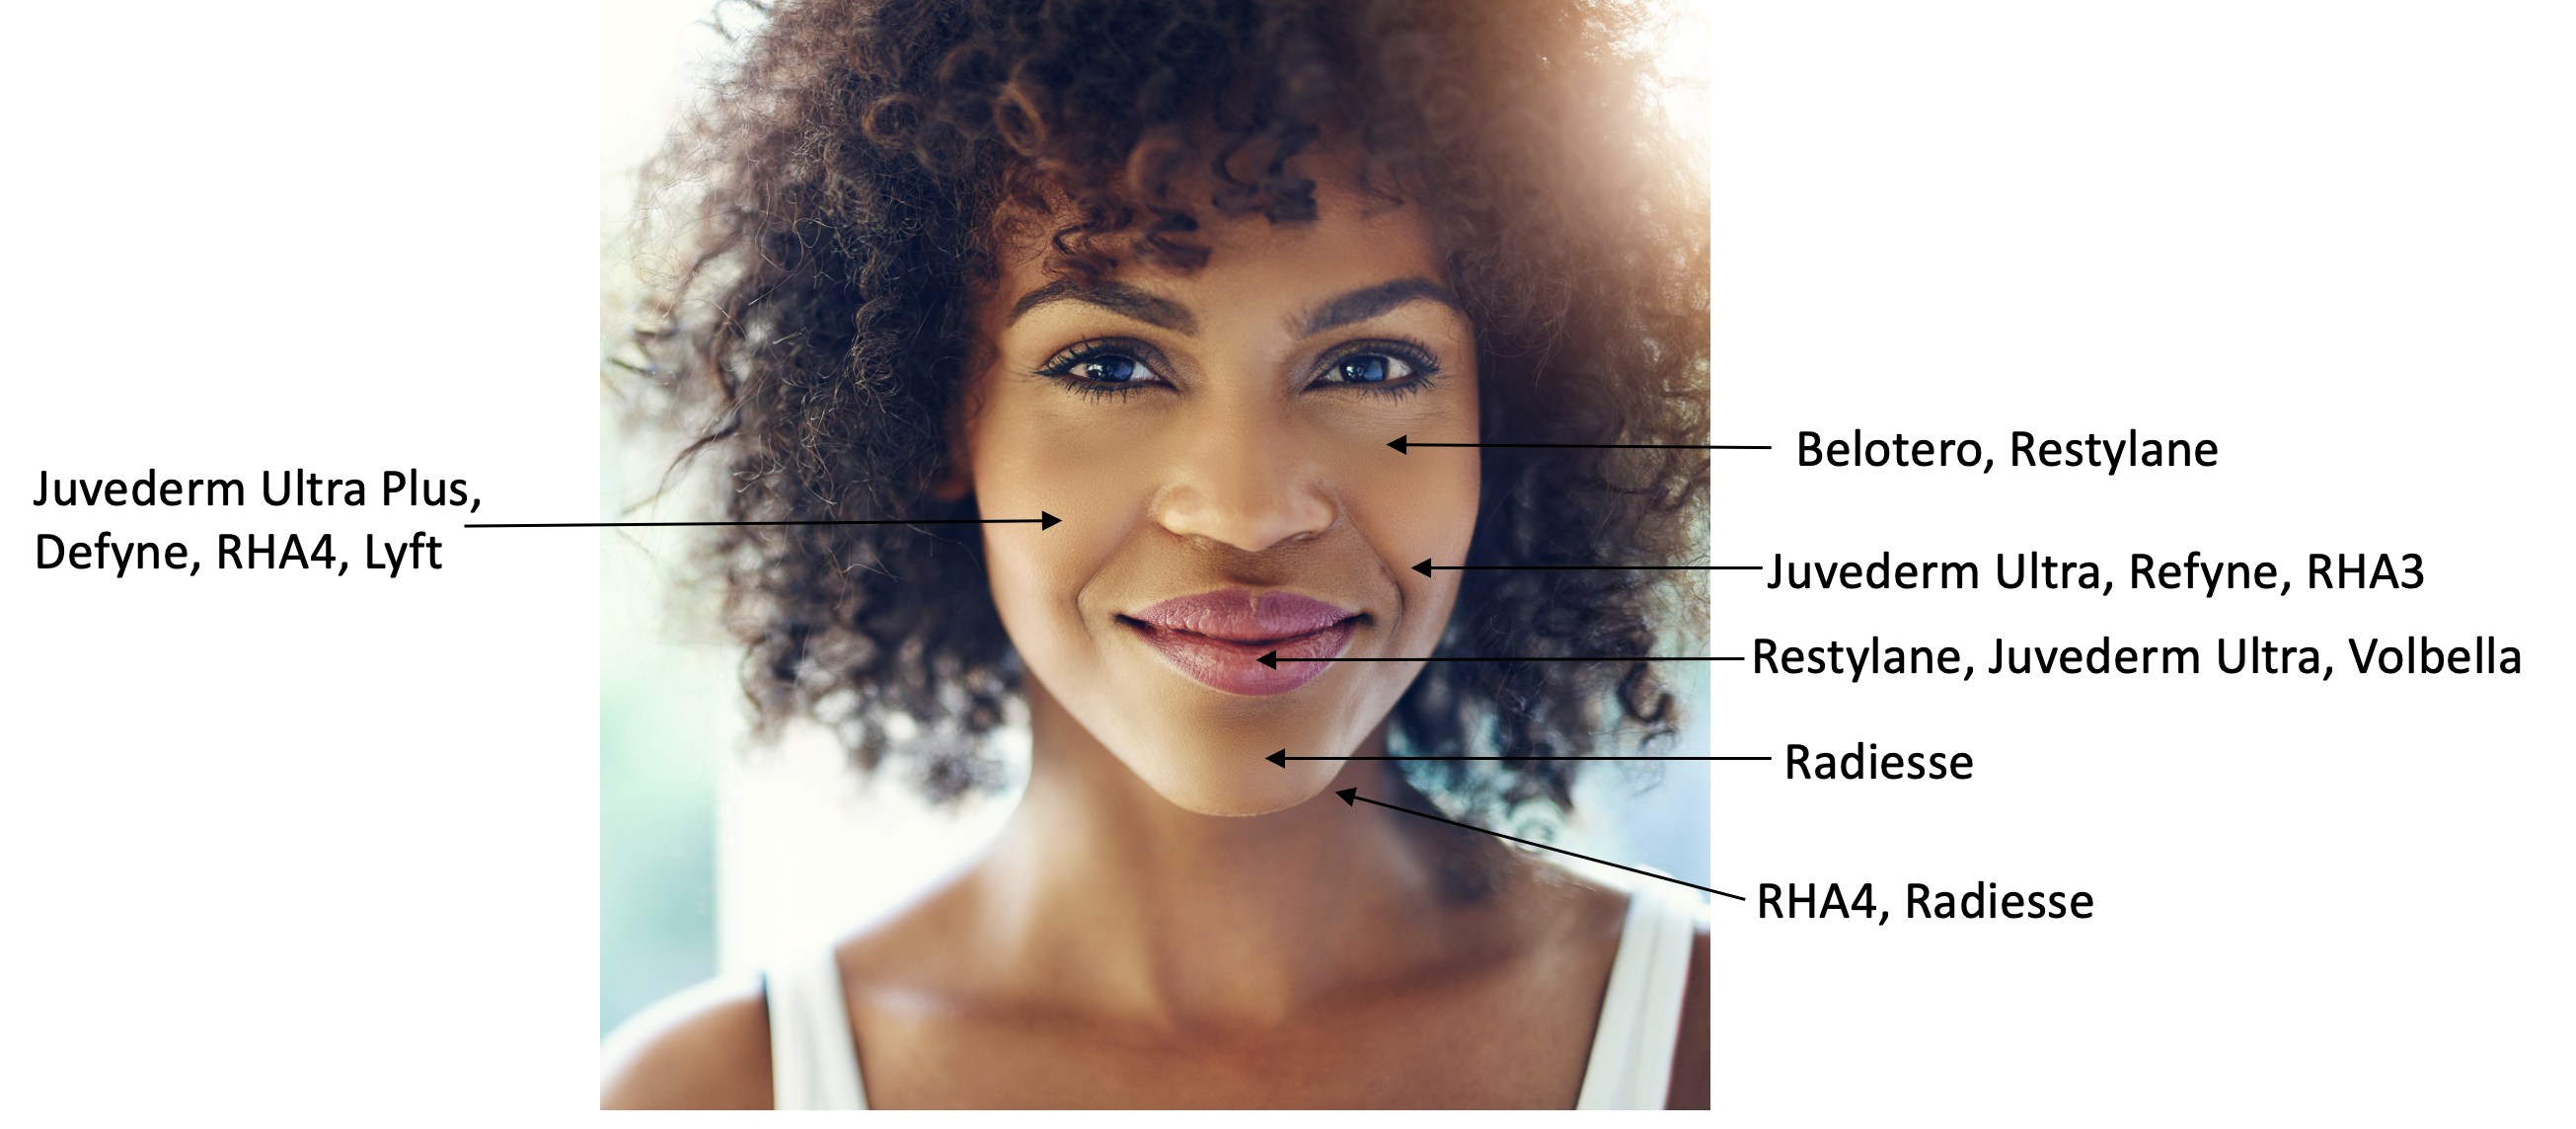 Soft tissue filler choices for black patients